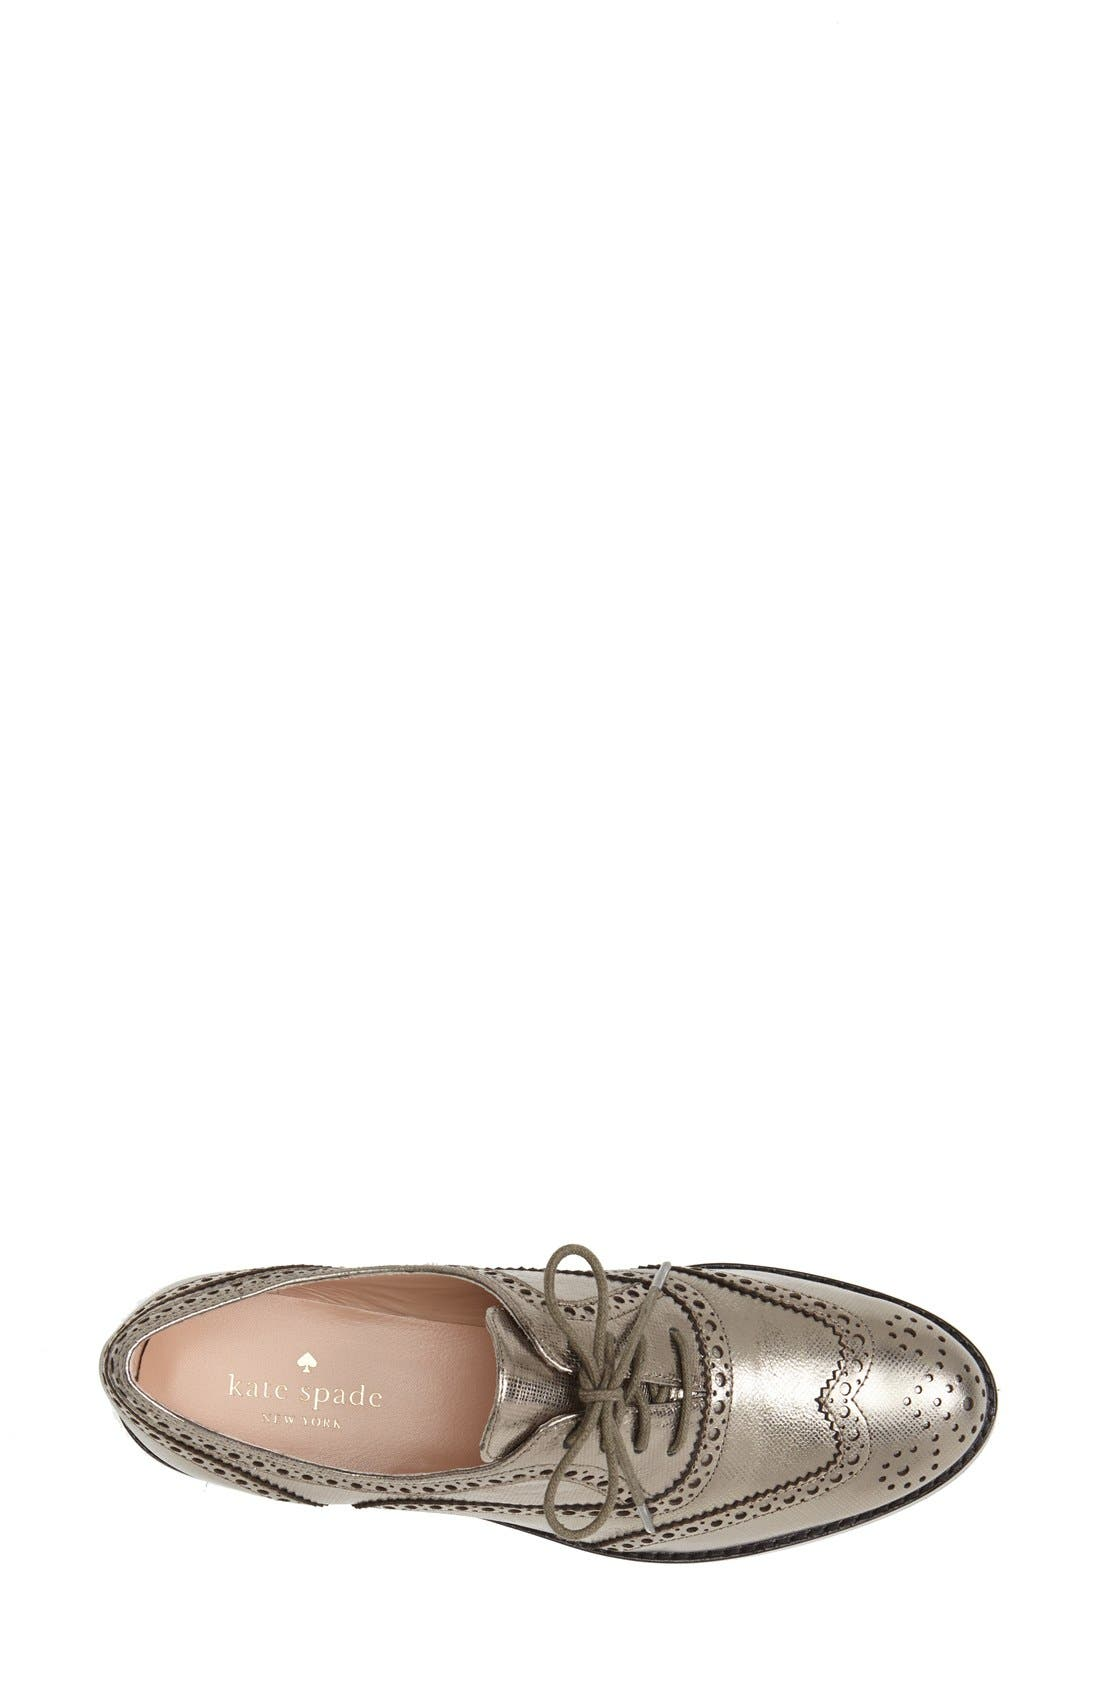 Alternate Image 3  - kate spade new york 'pella' flat (Women)